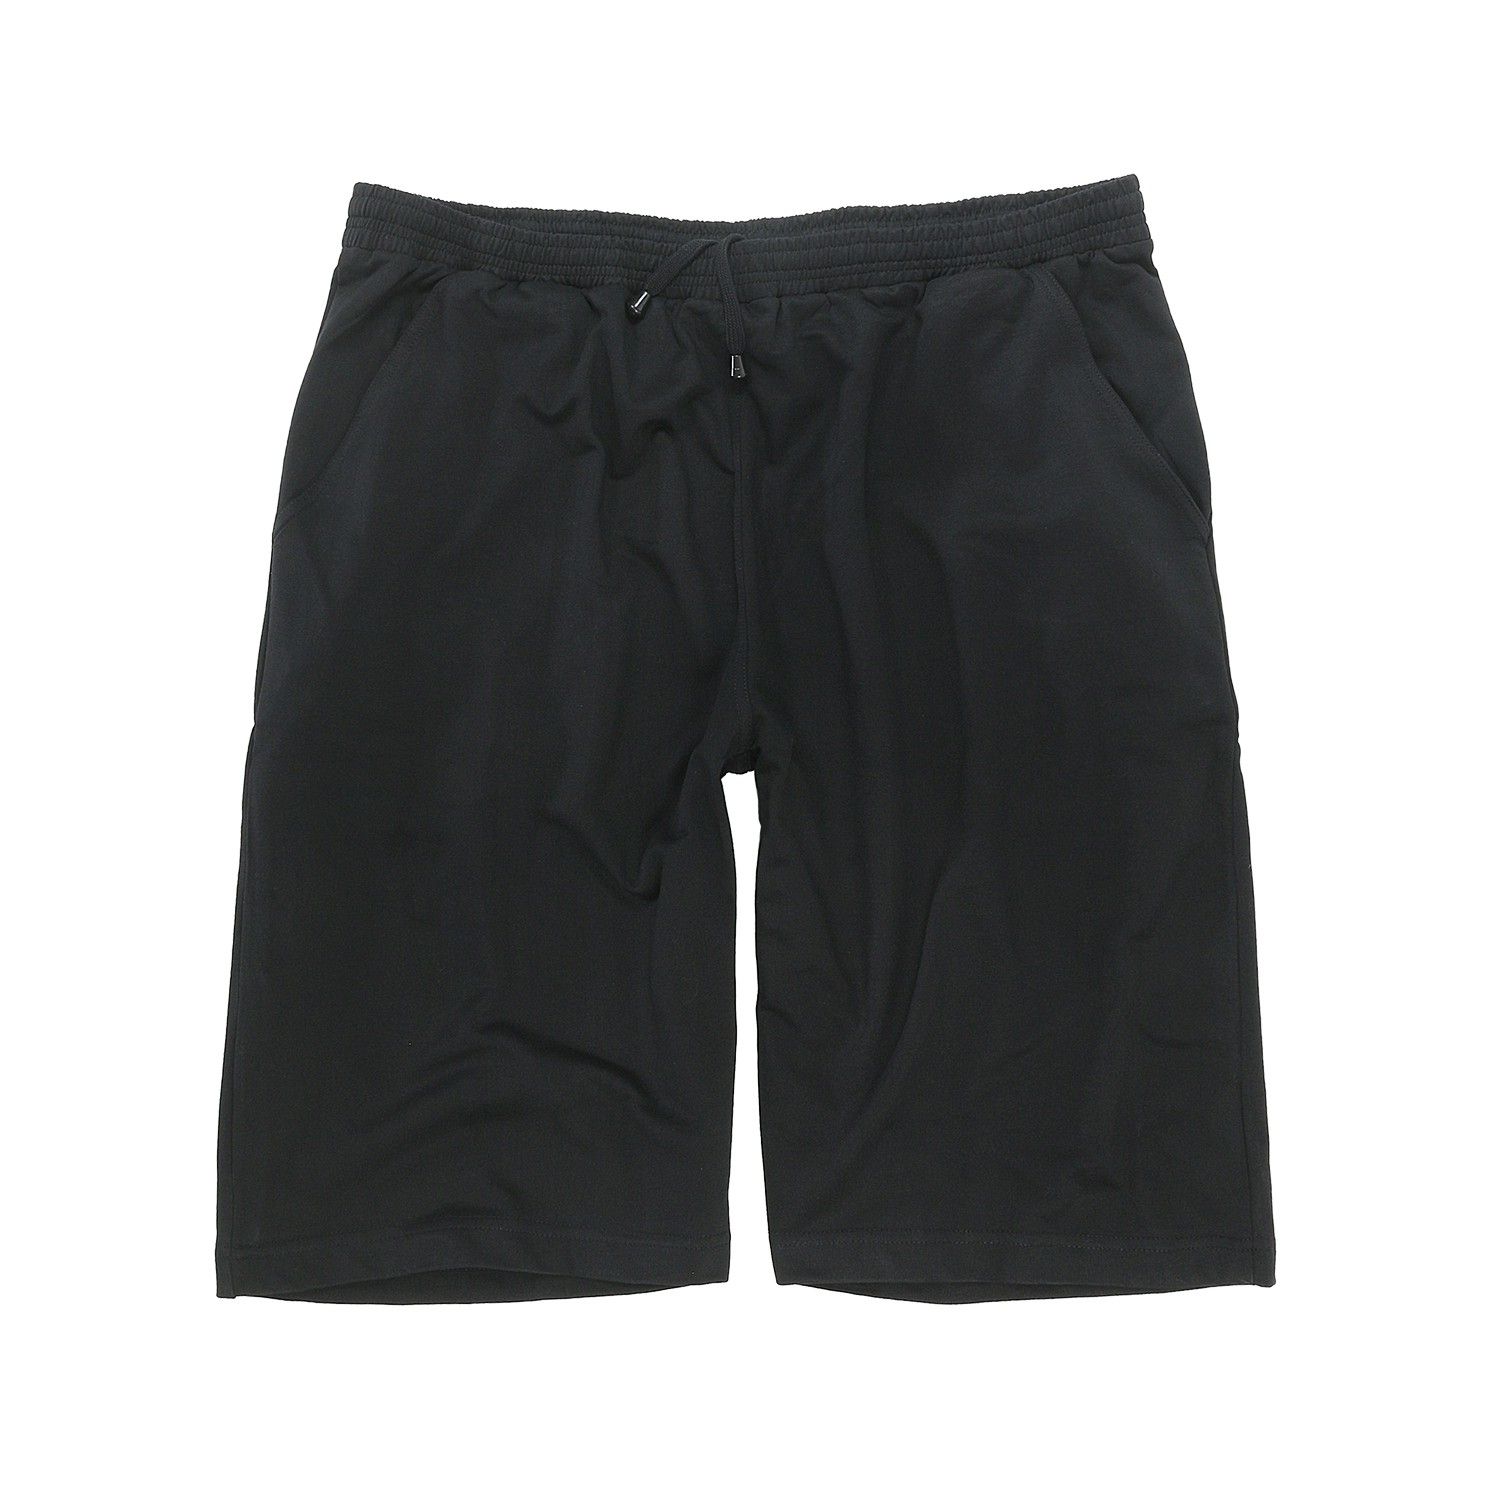 Detail Image to Black short jogging trousers up to 14XL by Adamo